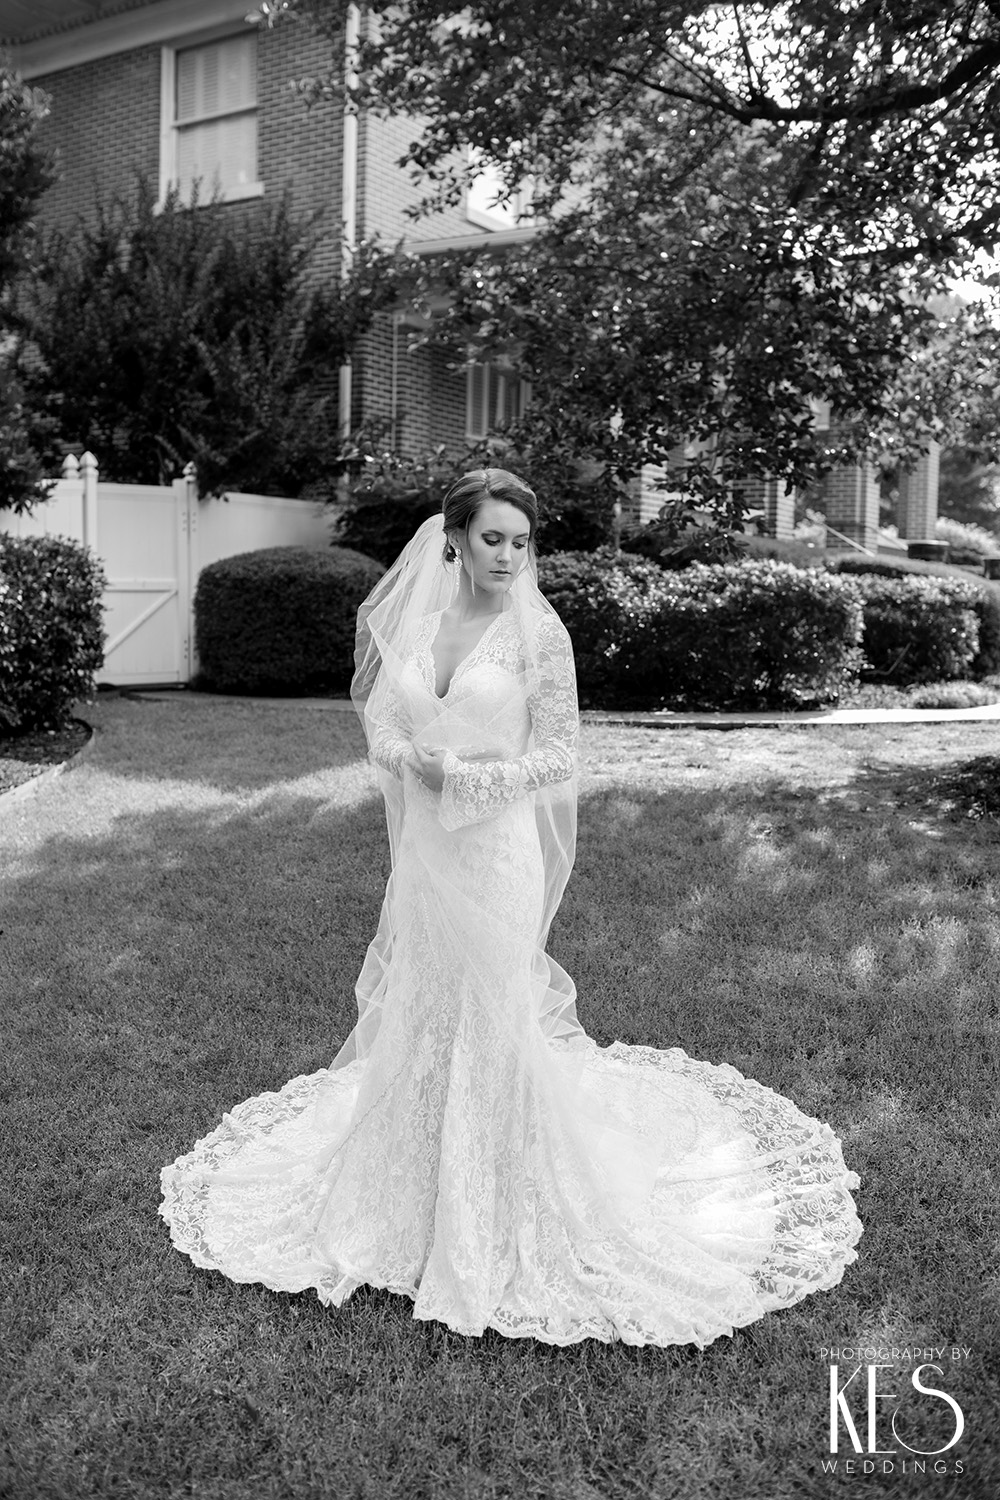 Andria_Bridals_Jonesboro_KES_Weddings_9.JPG